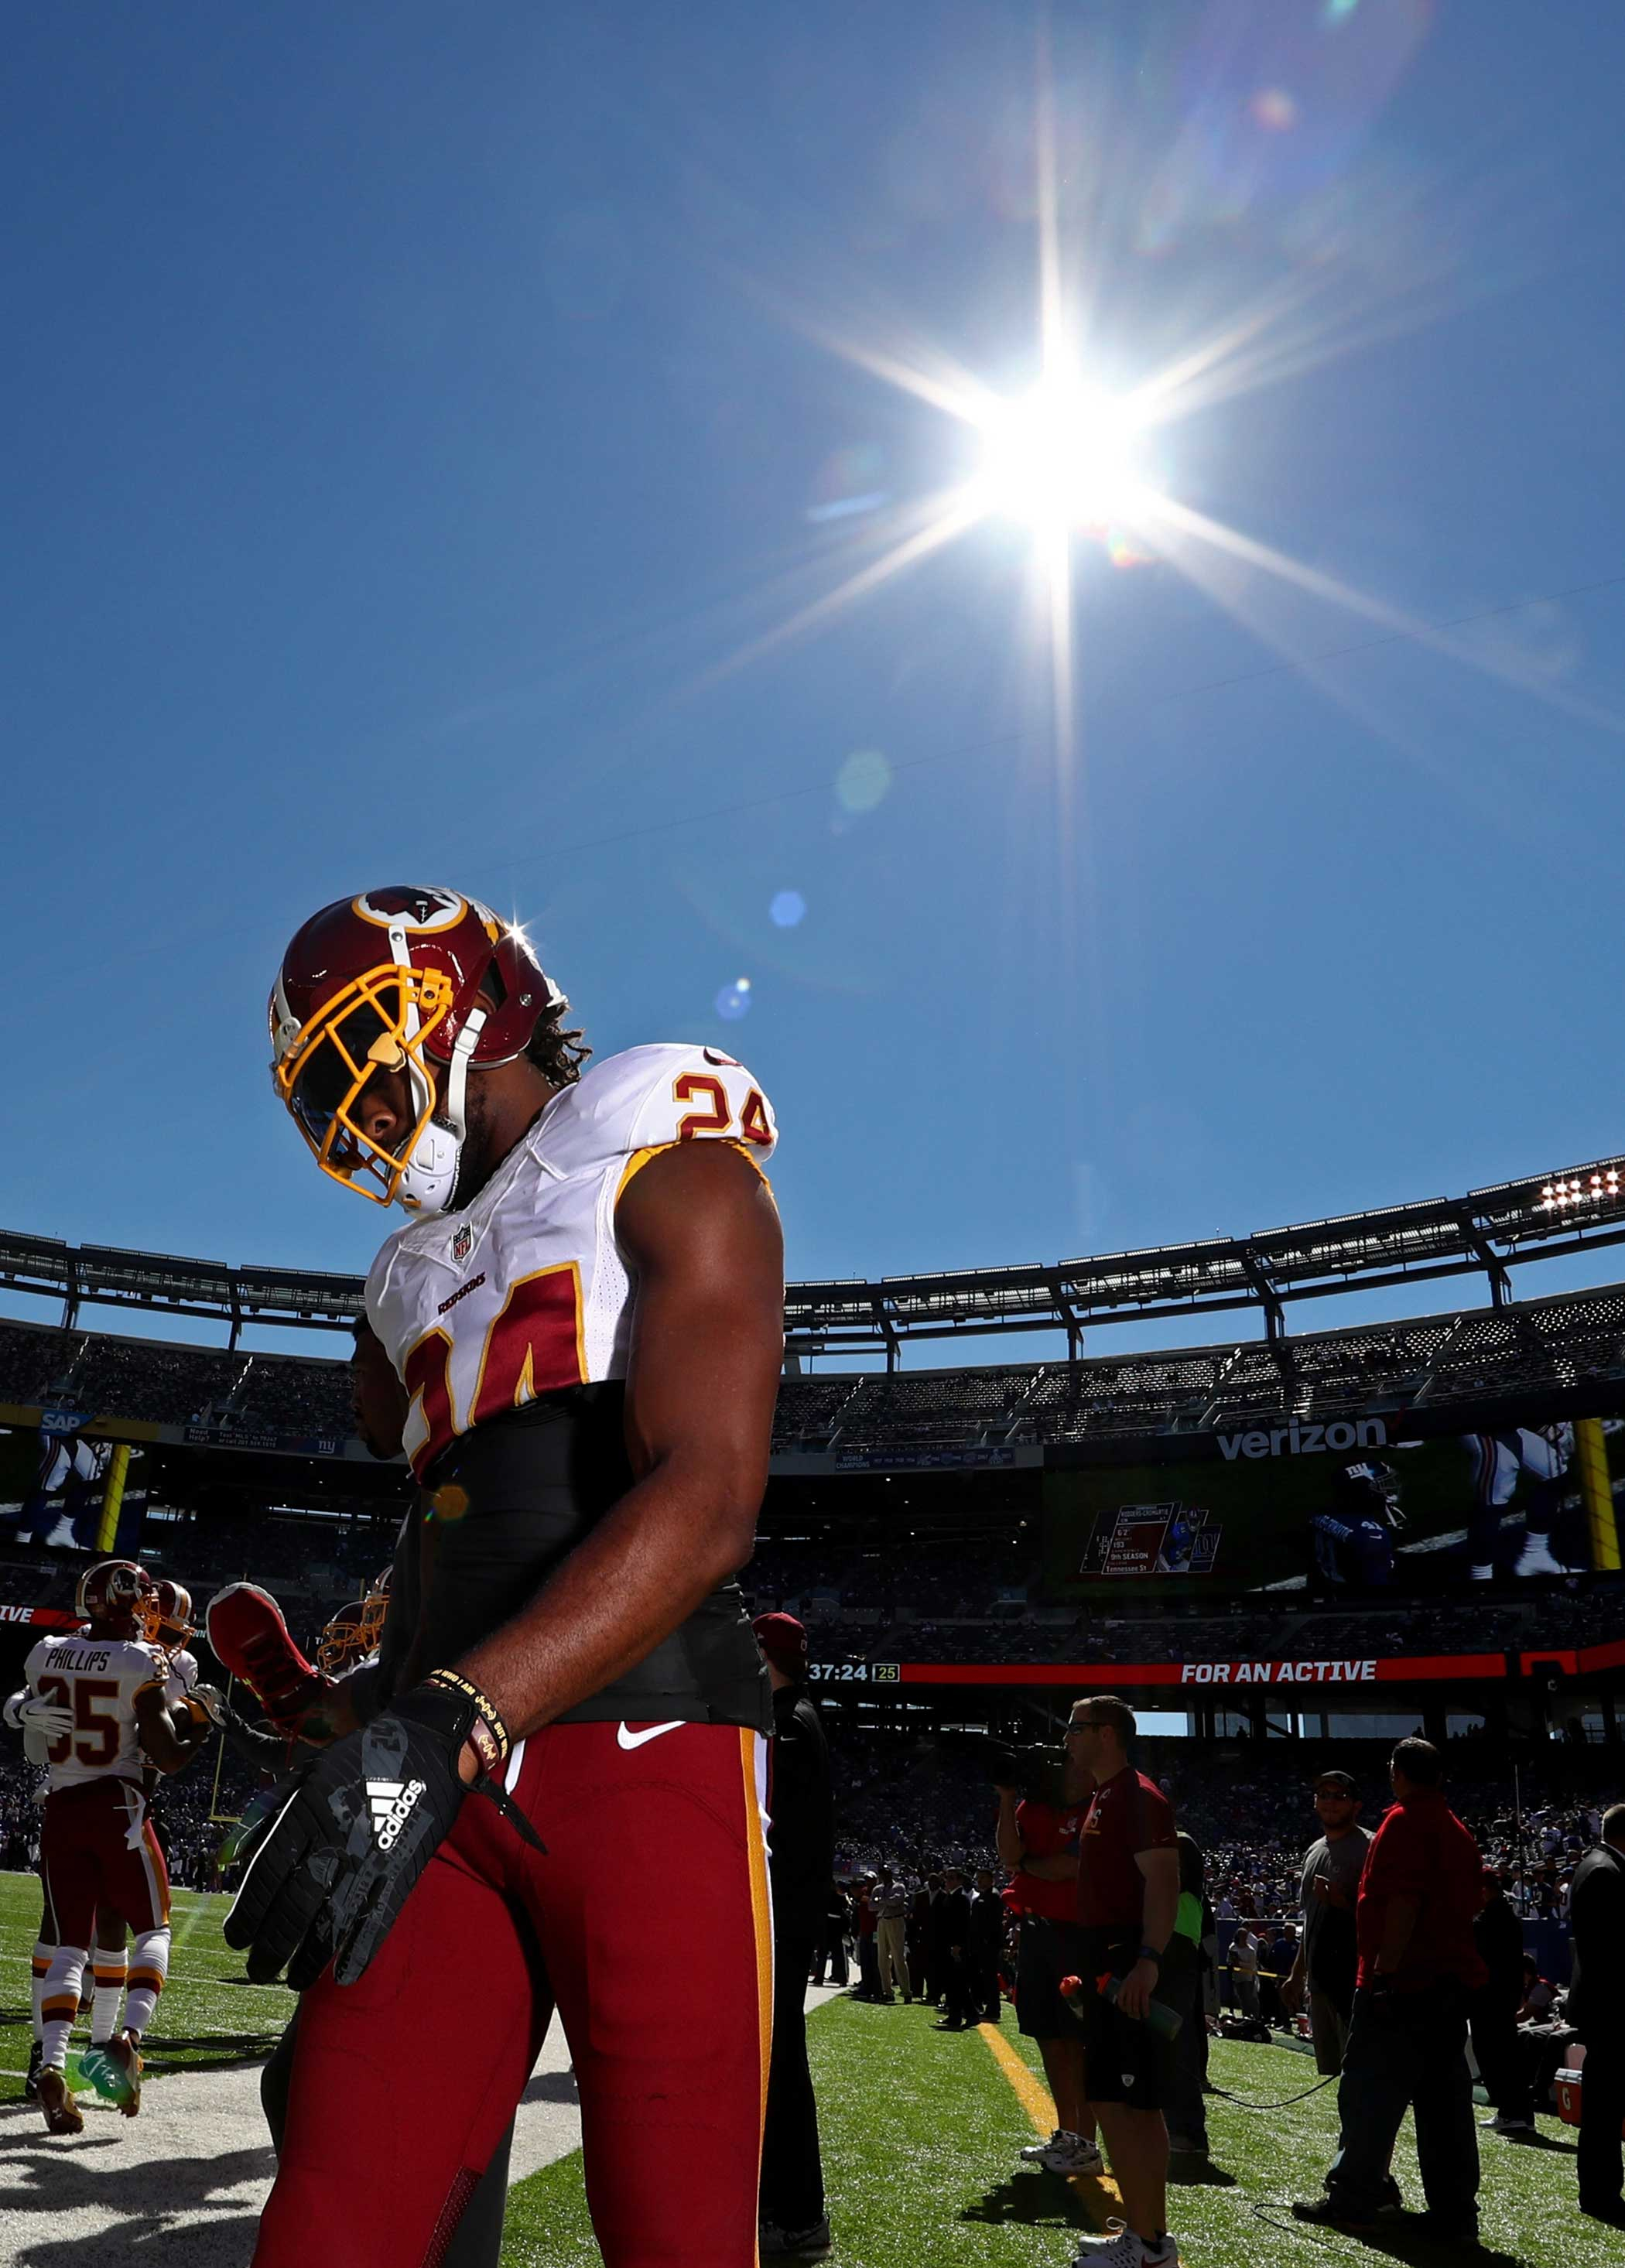 Josh Norman of the Washington Redskins looks on before the game against the New York Giants at MetLife Stadium on Sept. 25, 2016 in East Rutherford, New Jersey.